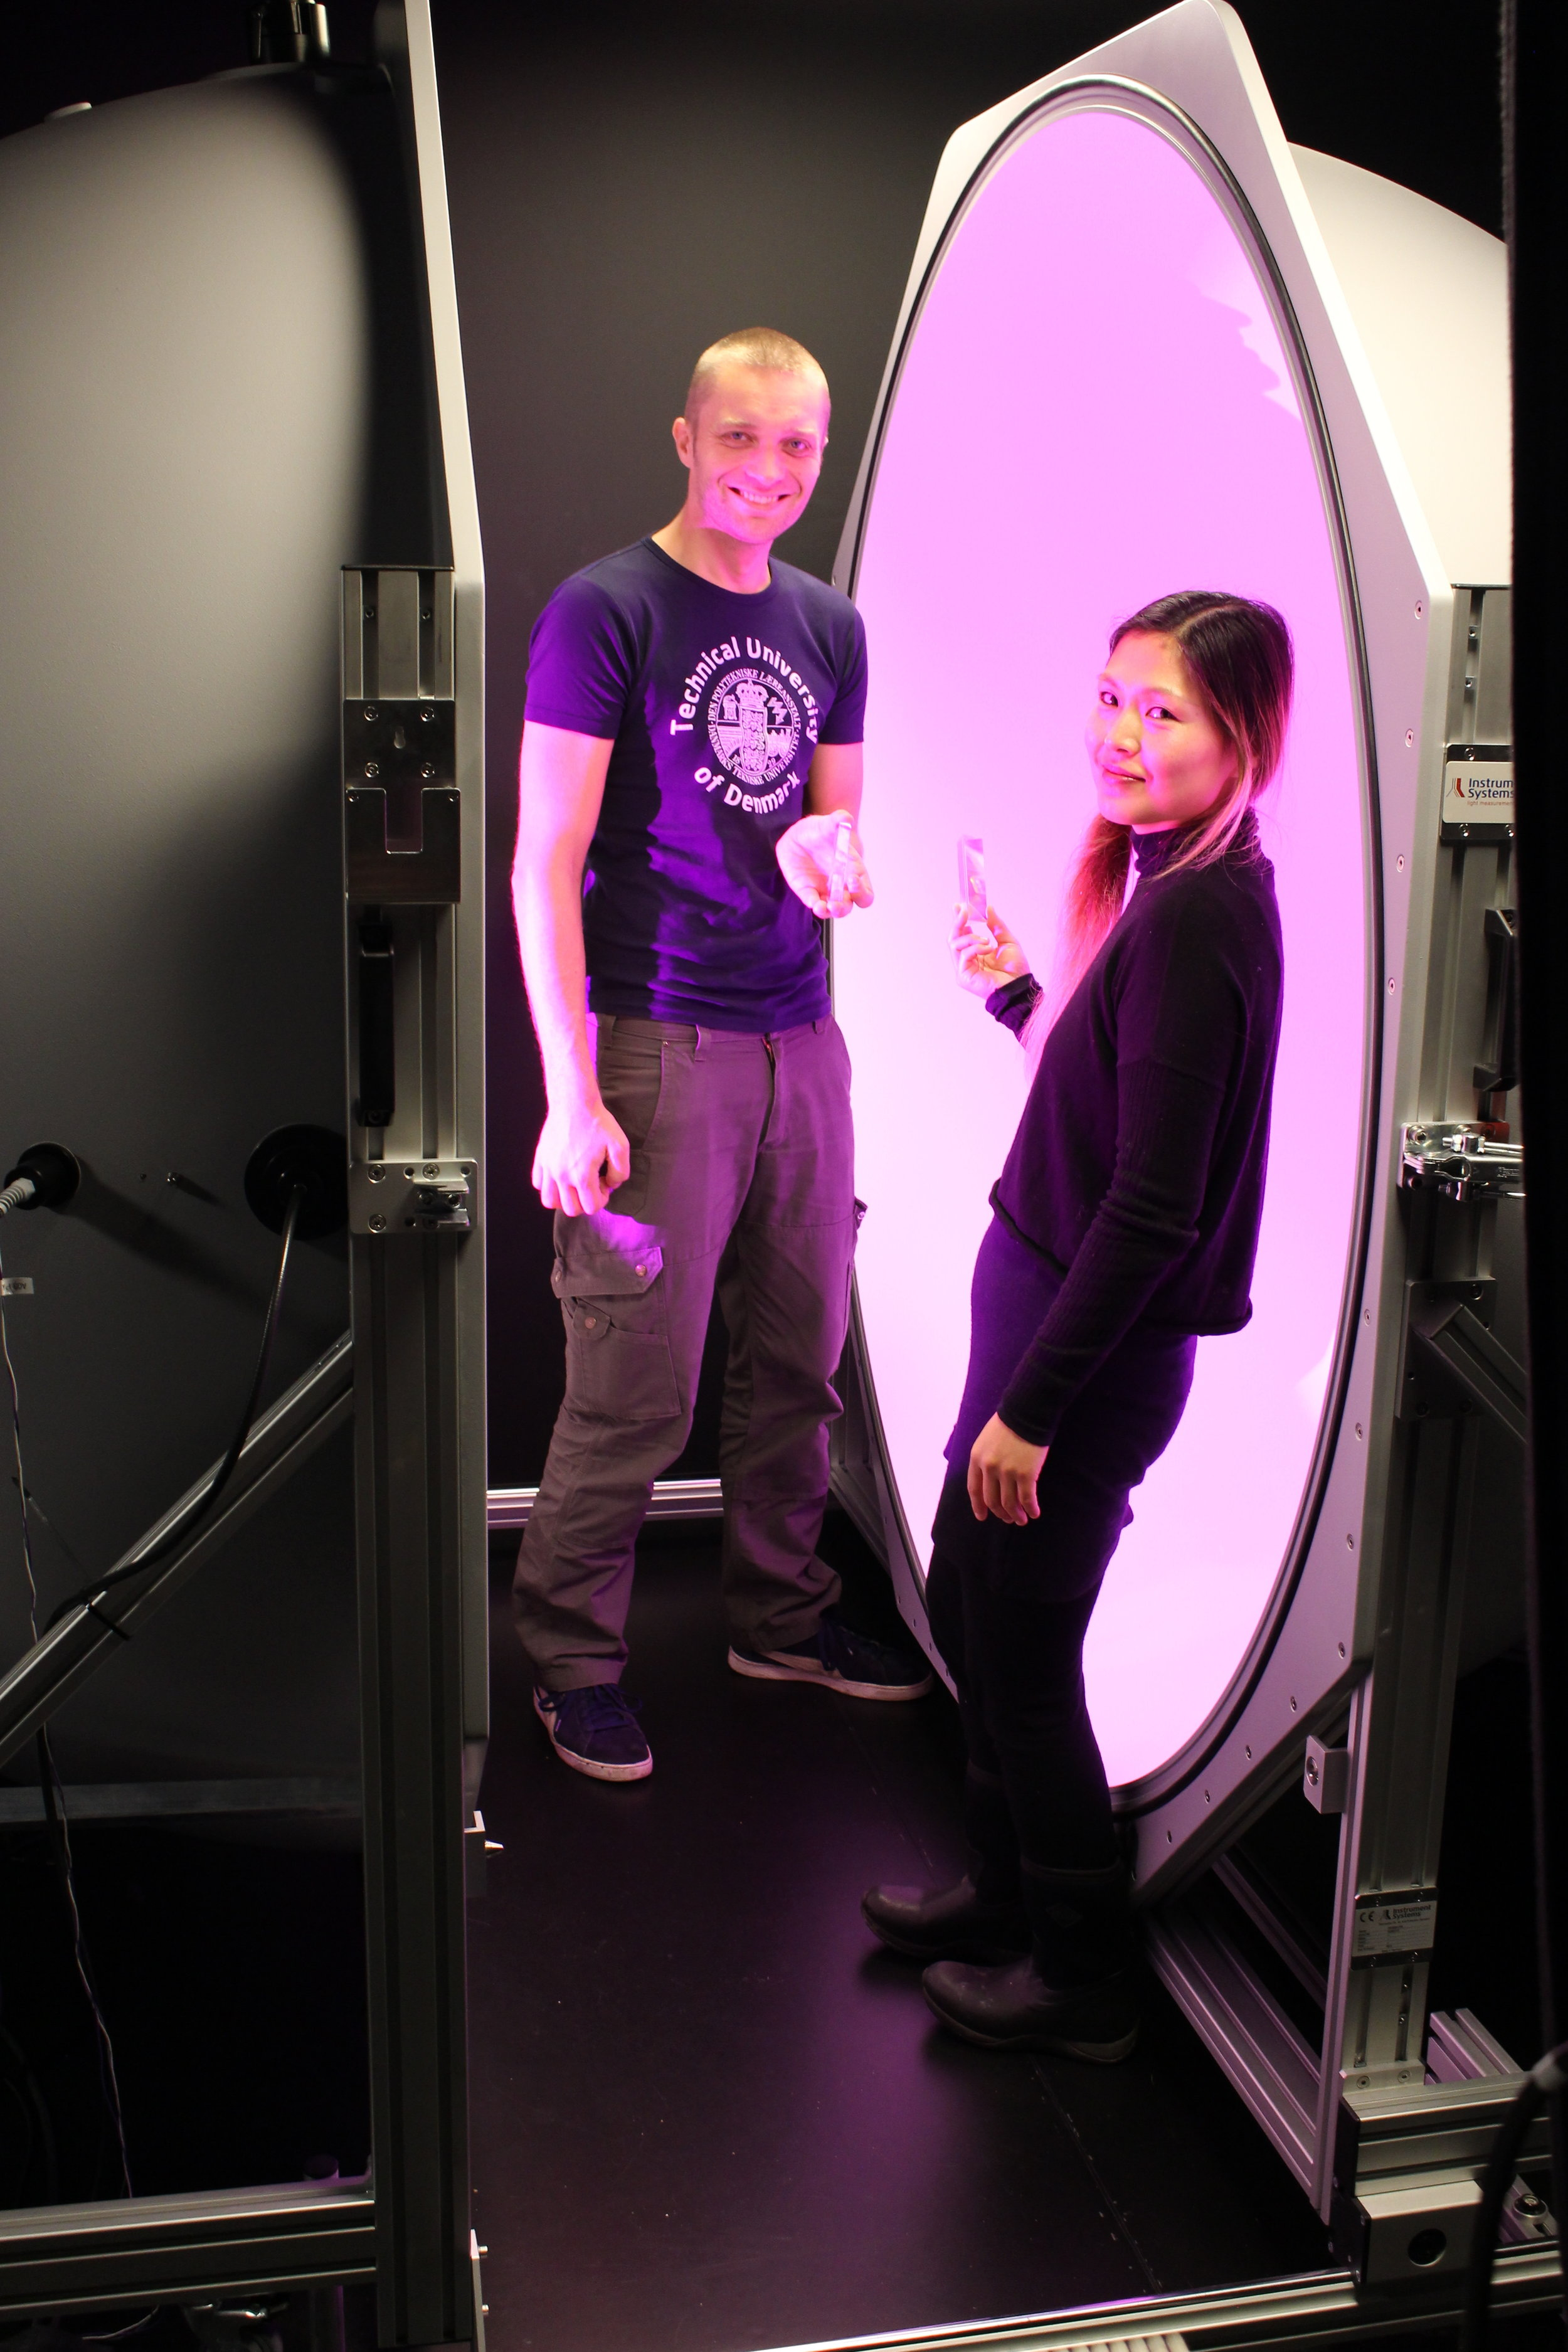 Physicist Anders Torseth and Jette hye Jin Mortensen at DTU Fotonics